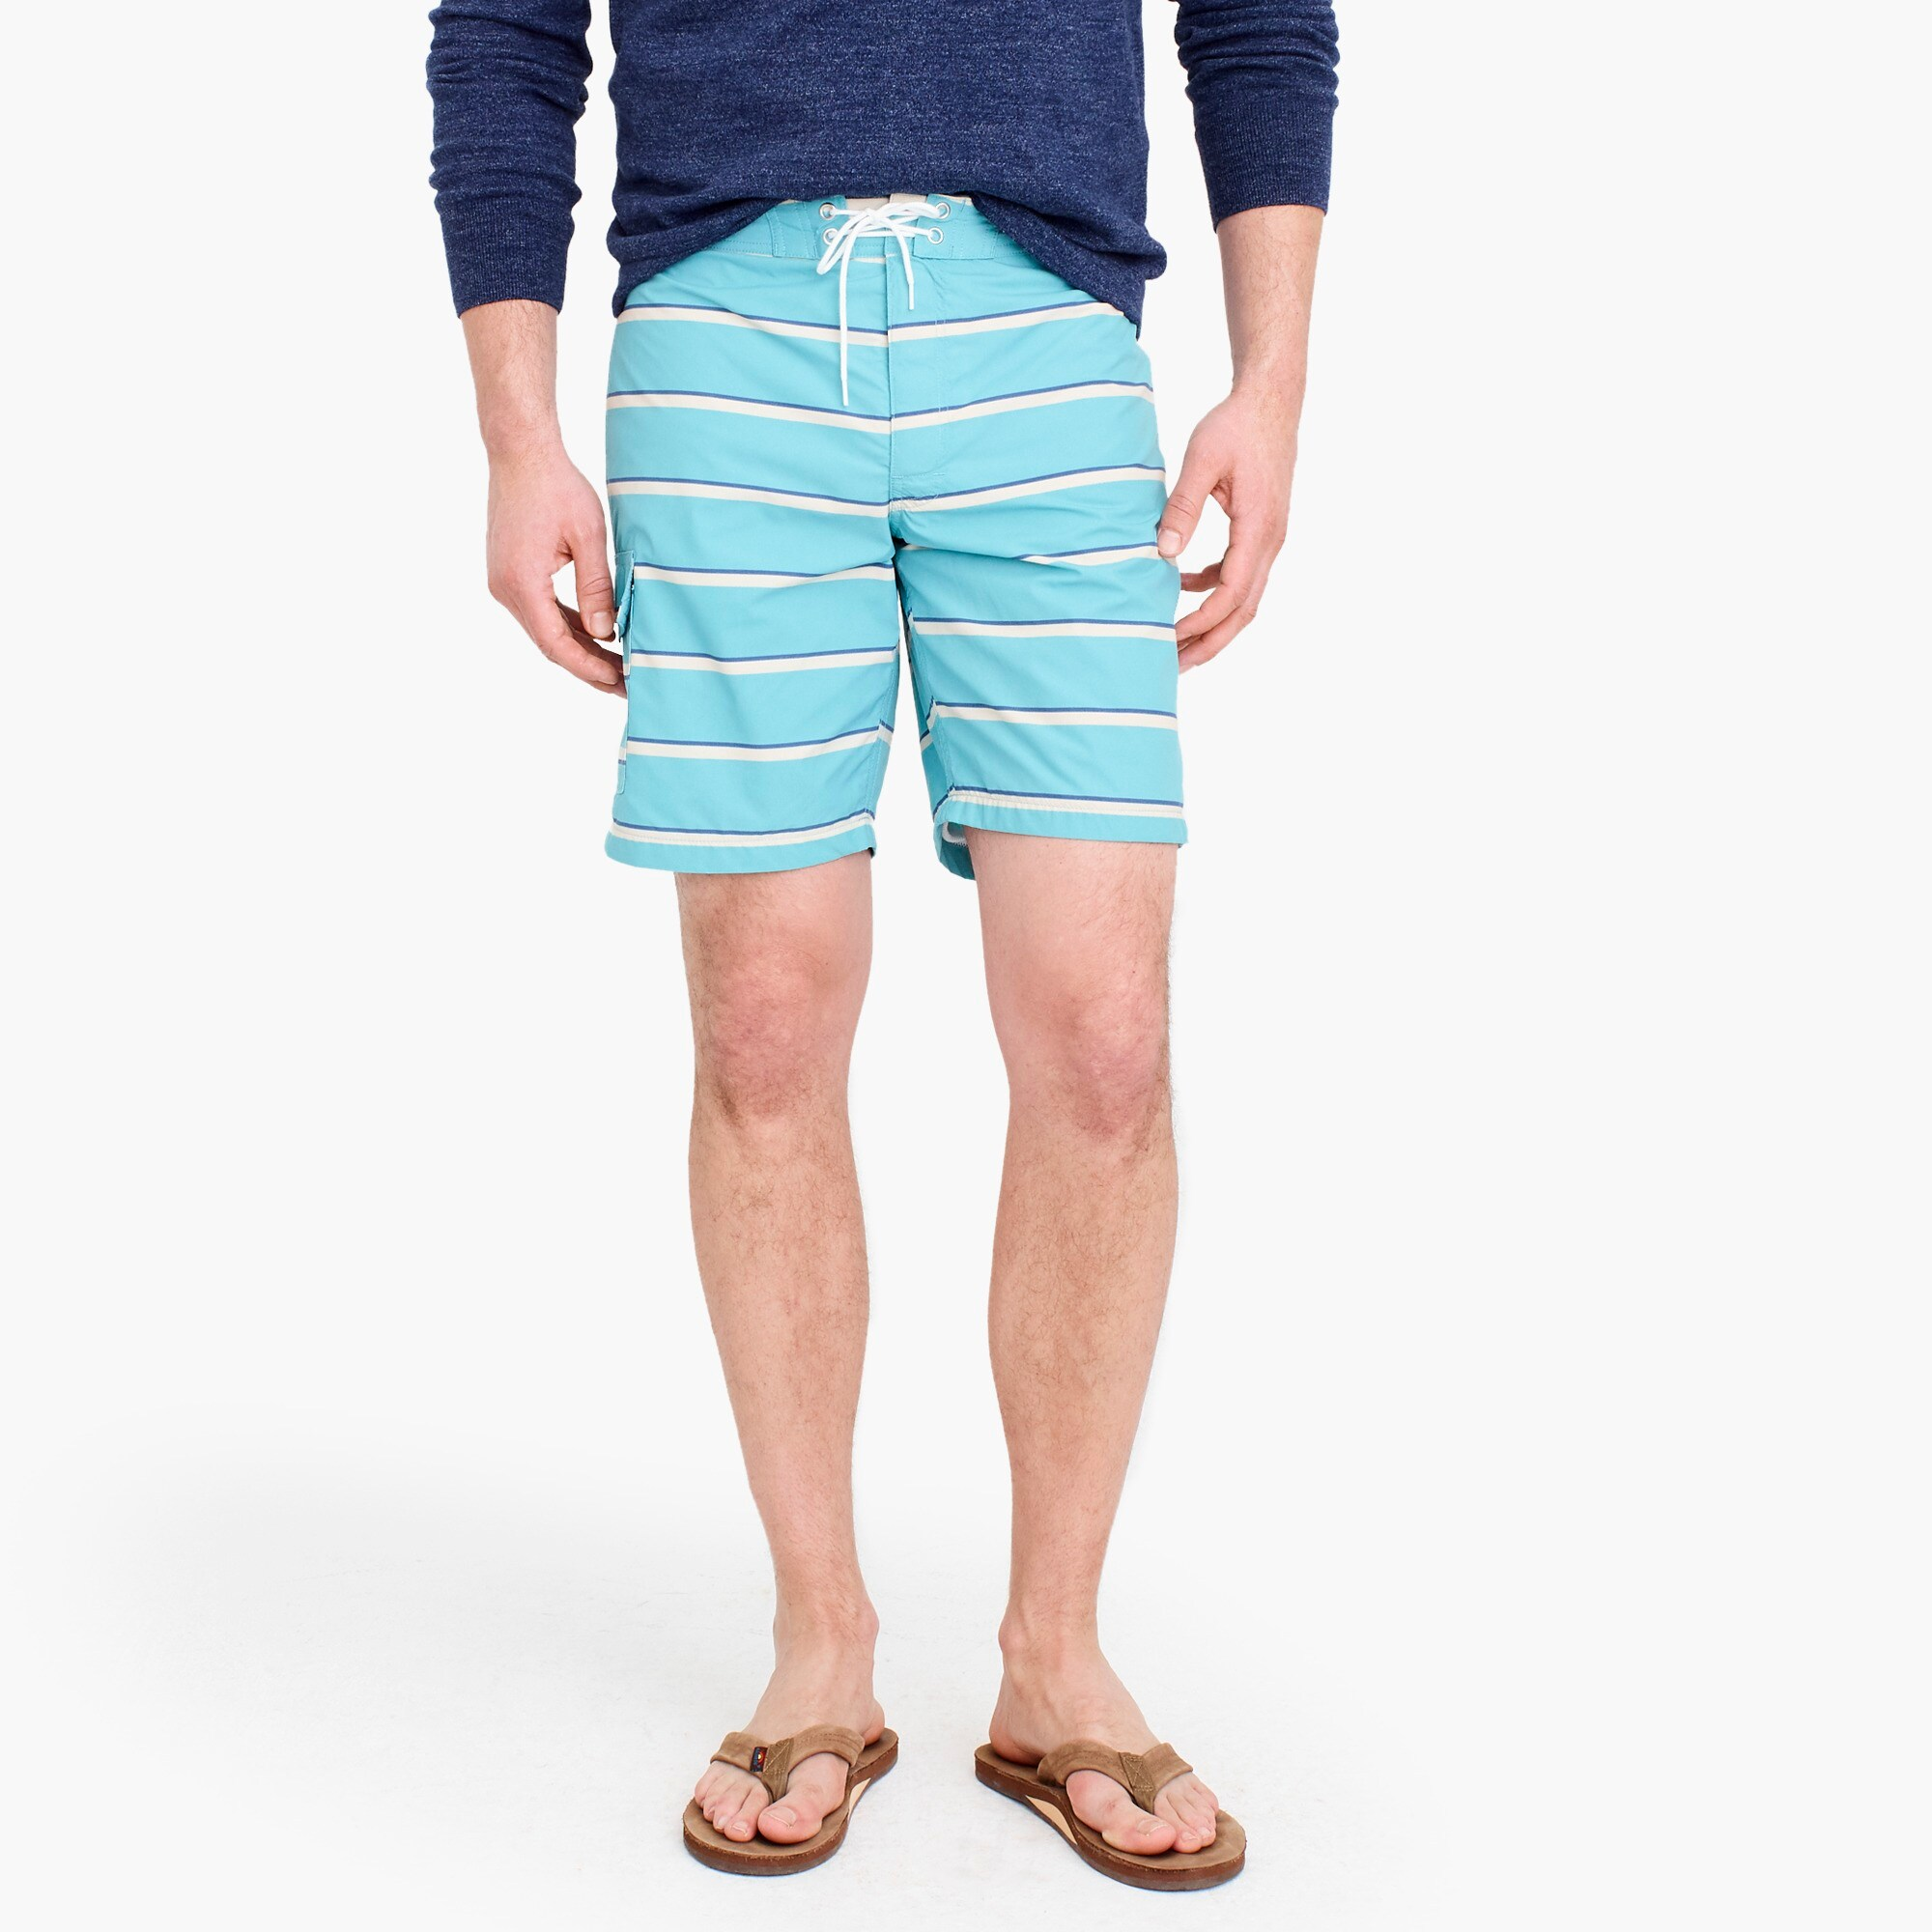 men's 9 board short in turquoise stripe - men's swimwear